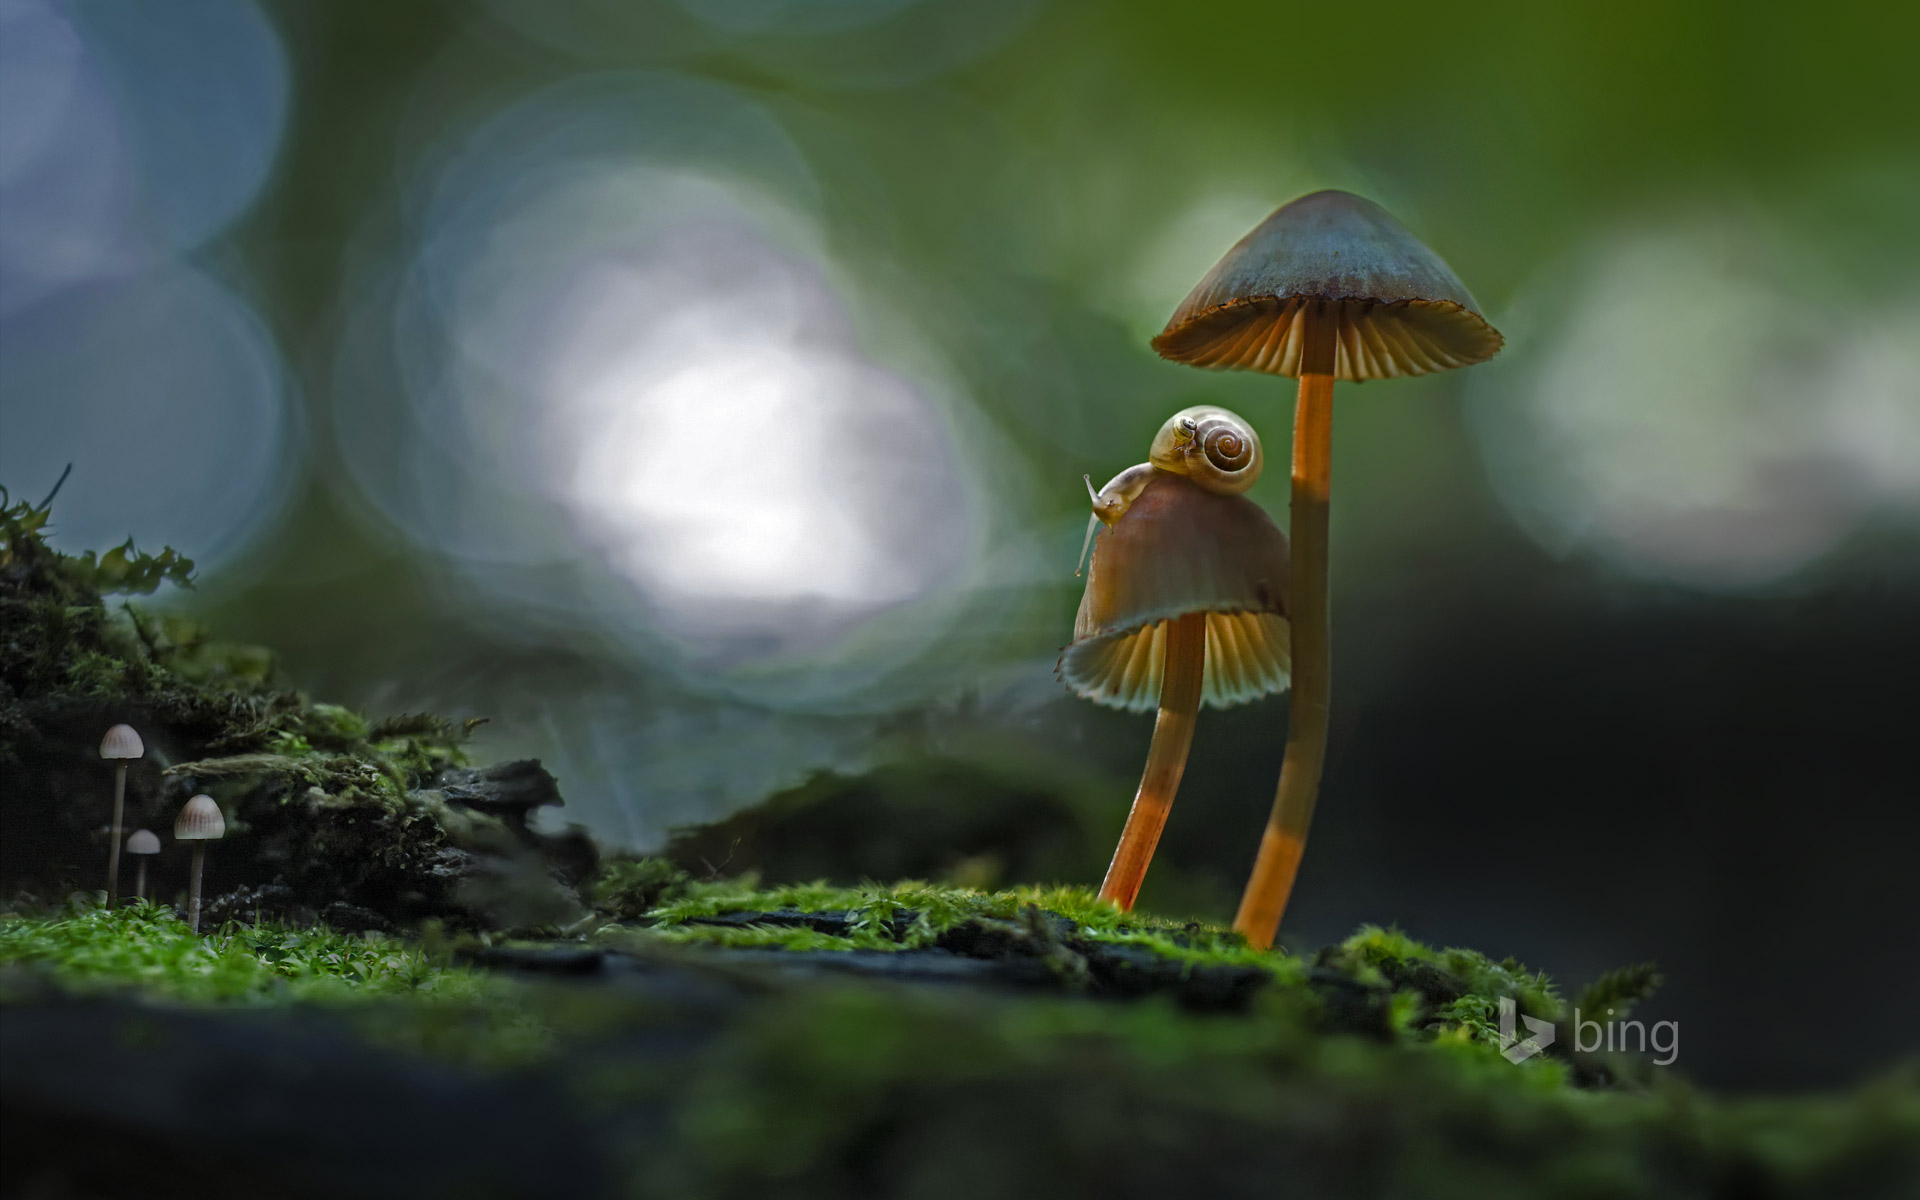 Two snails atop a mushroom